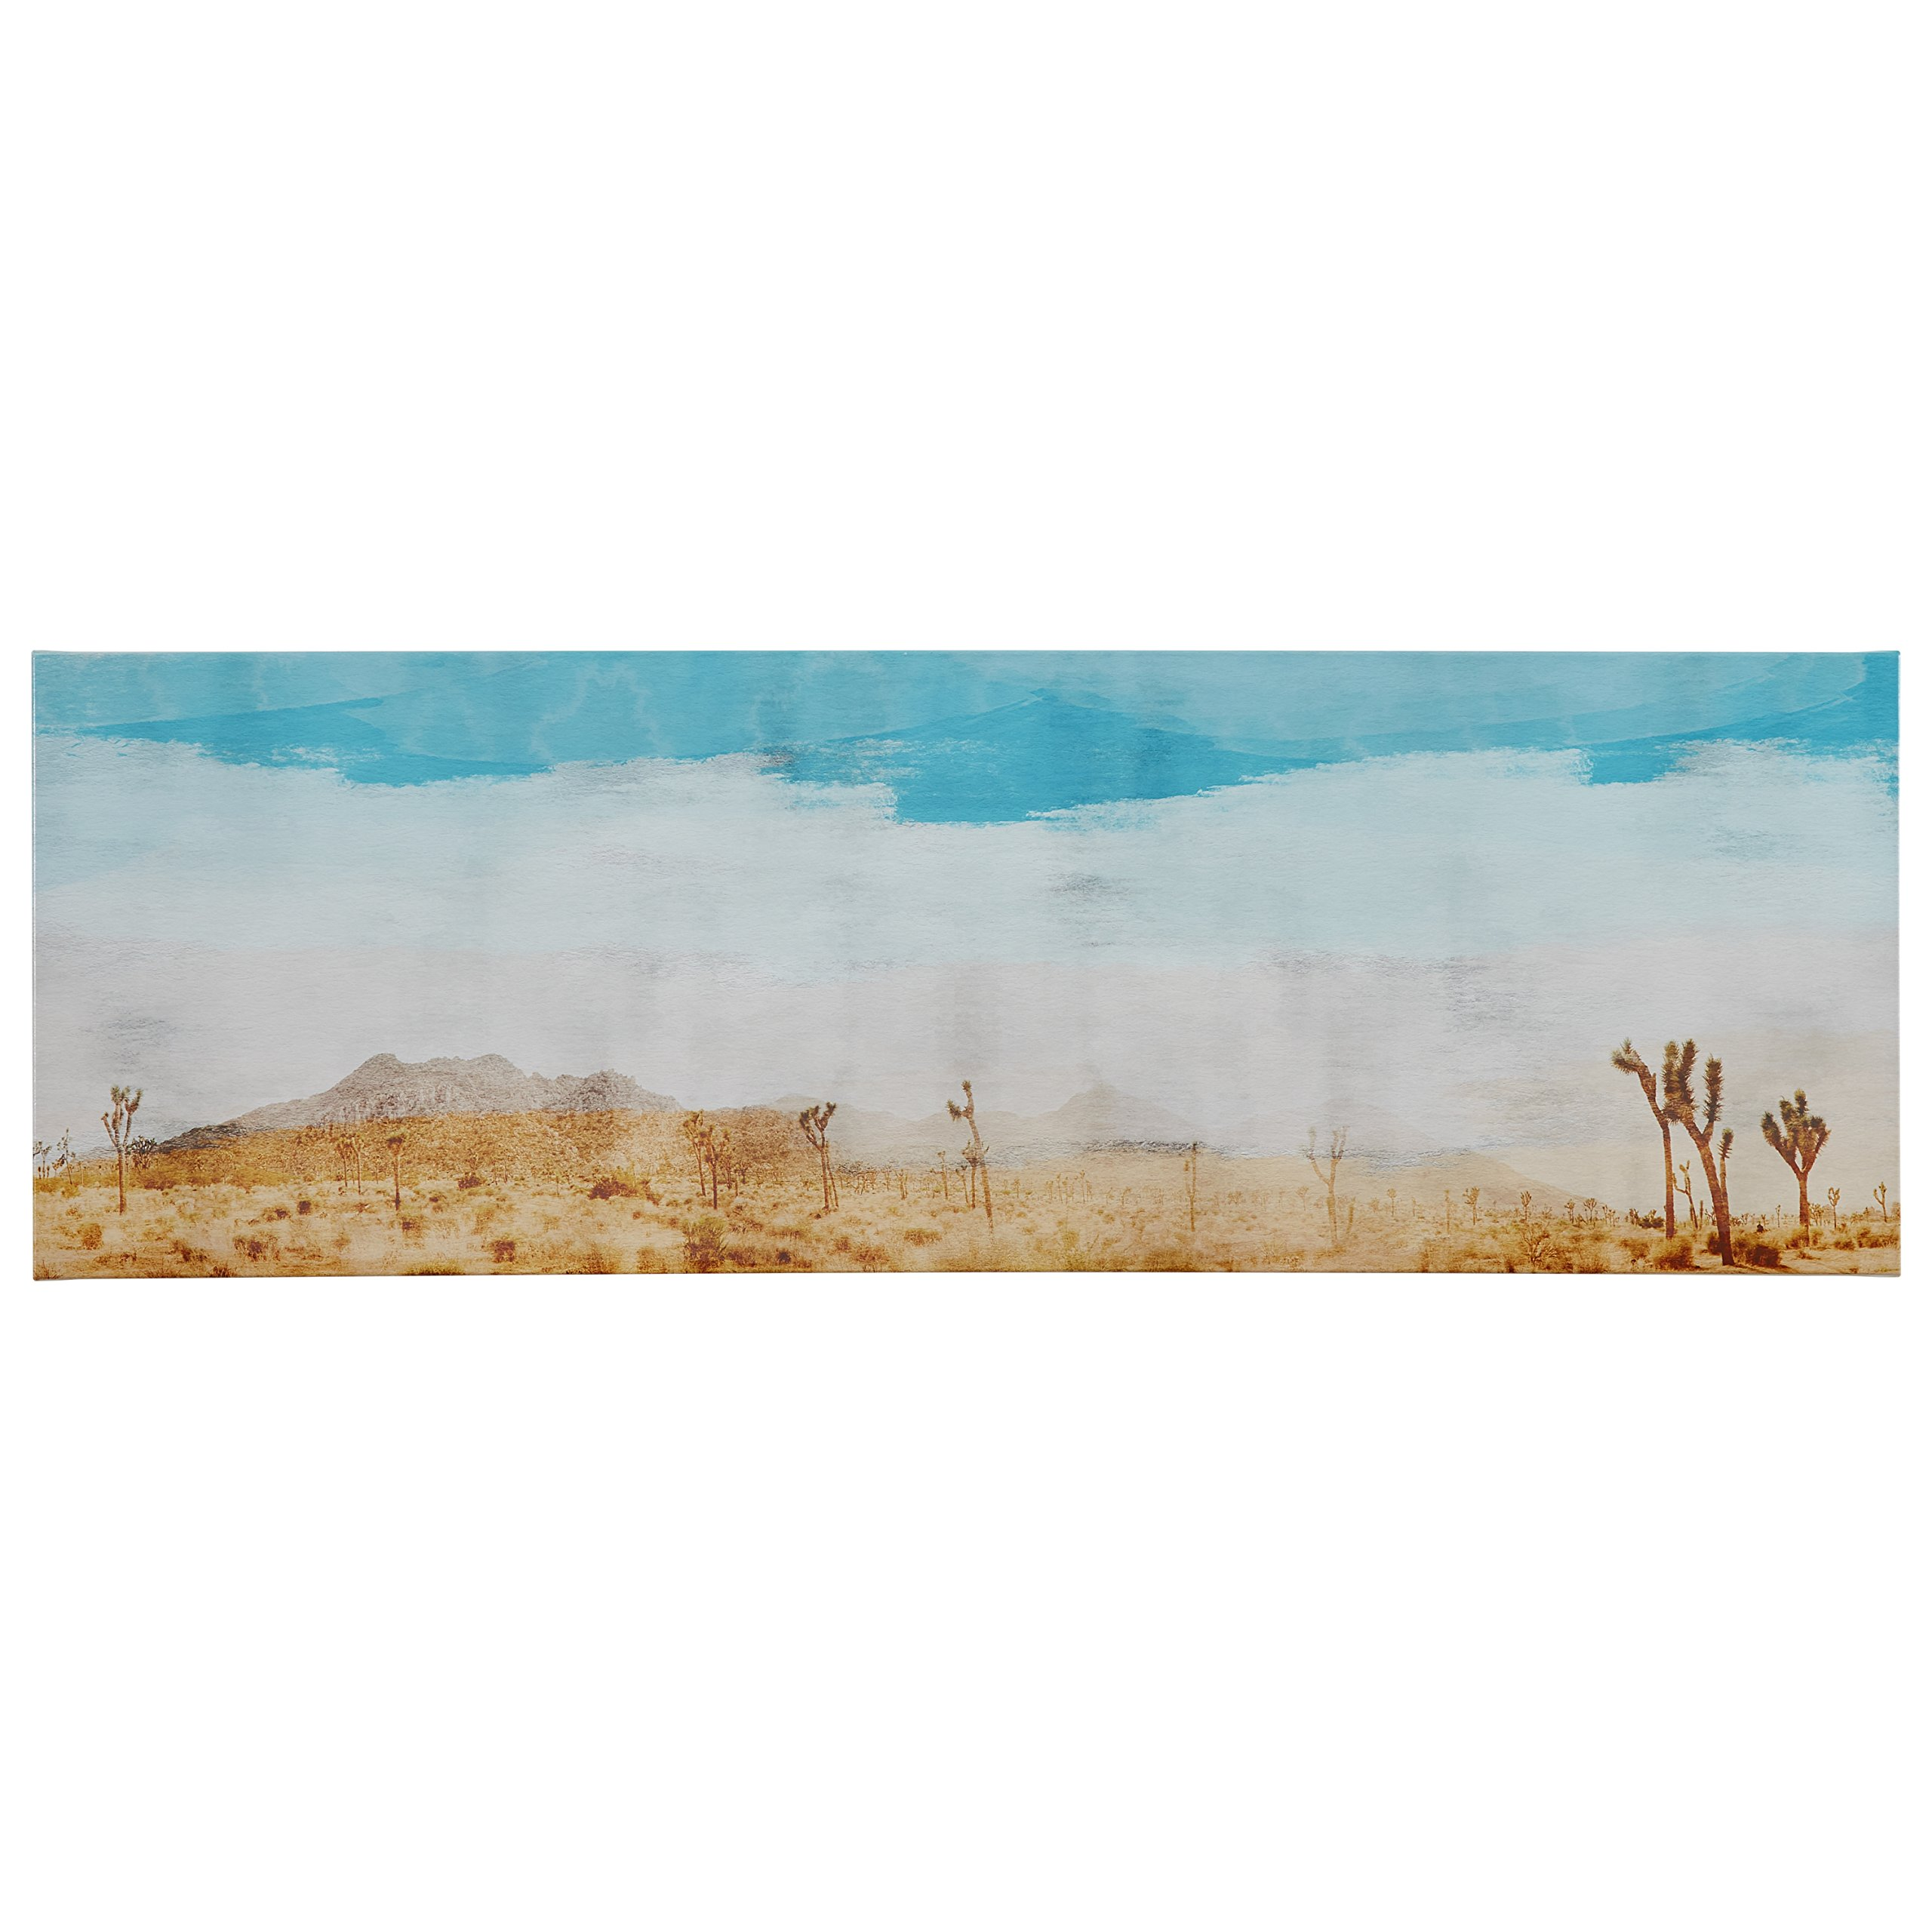 Contemporary Turquoise and Tan Desert Scene on Canvas, 60'' x 20'' by Stone & Beam